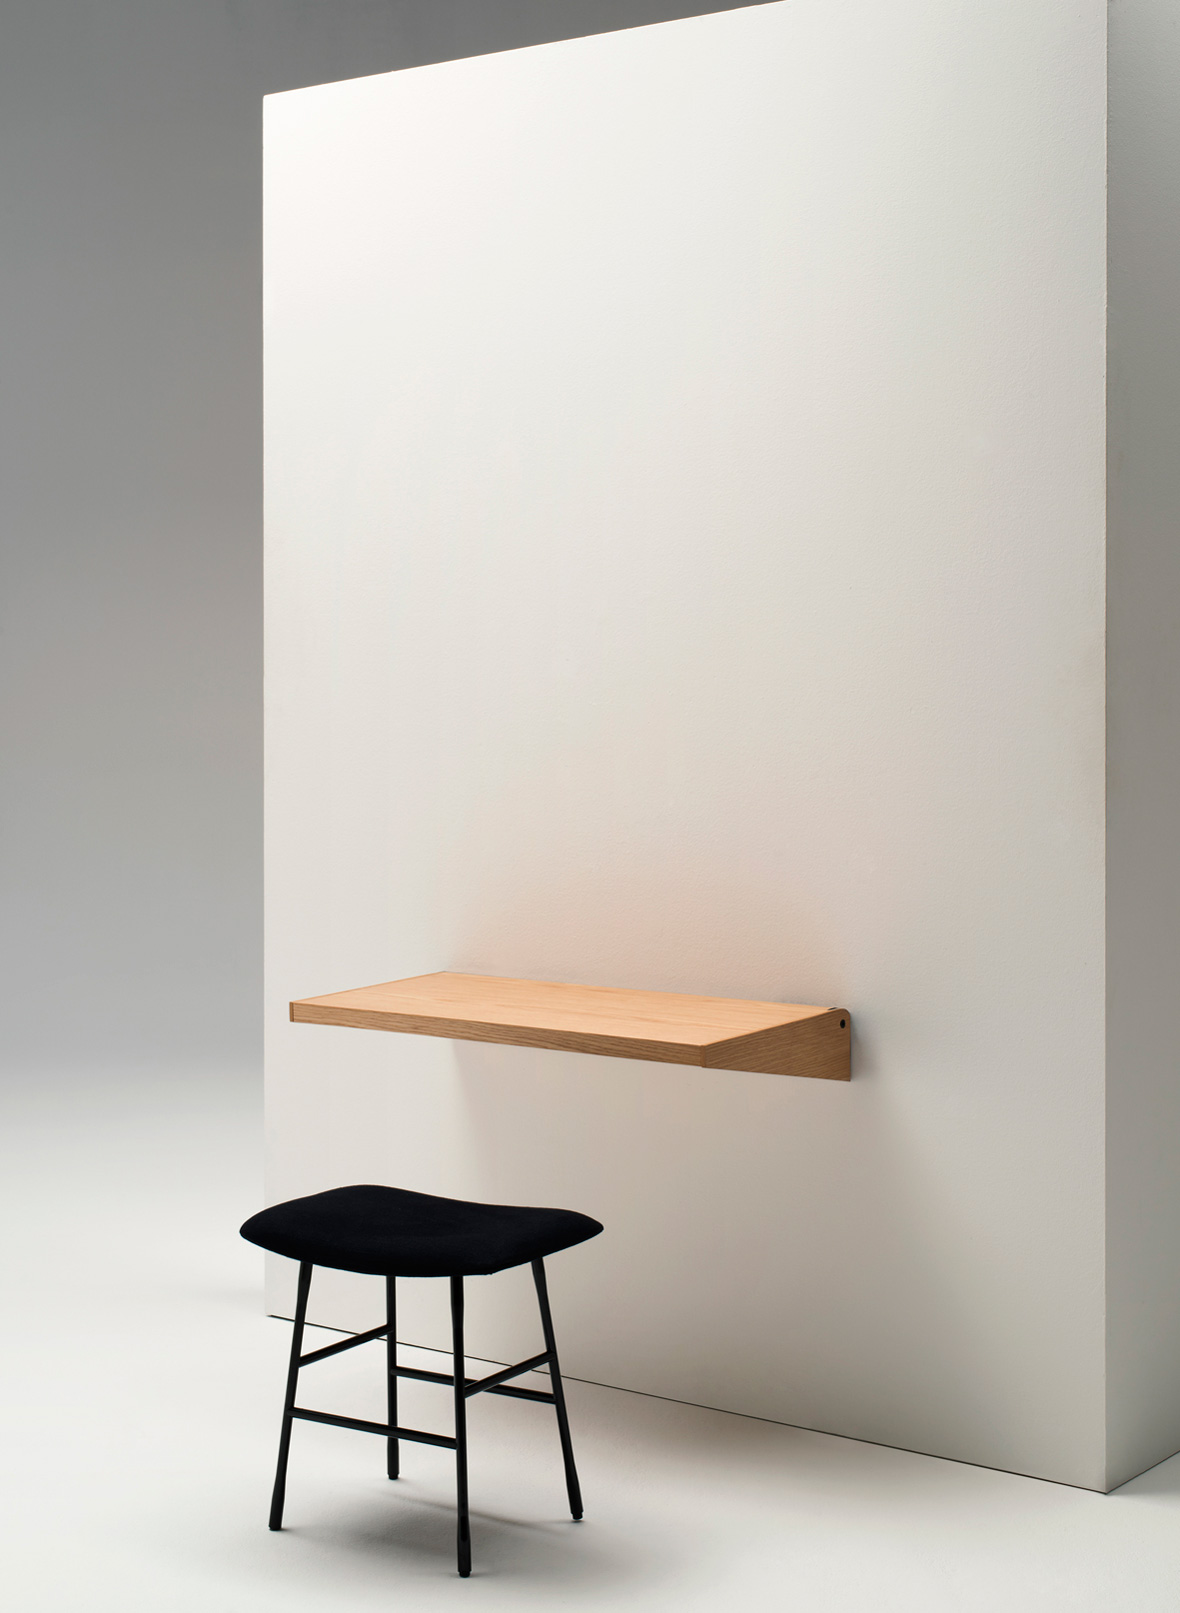 FJU Desk by Kaschkasch at IMM Cologne 2015 | Yellowtrace